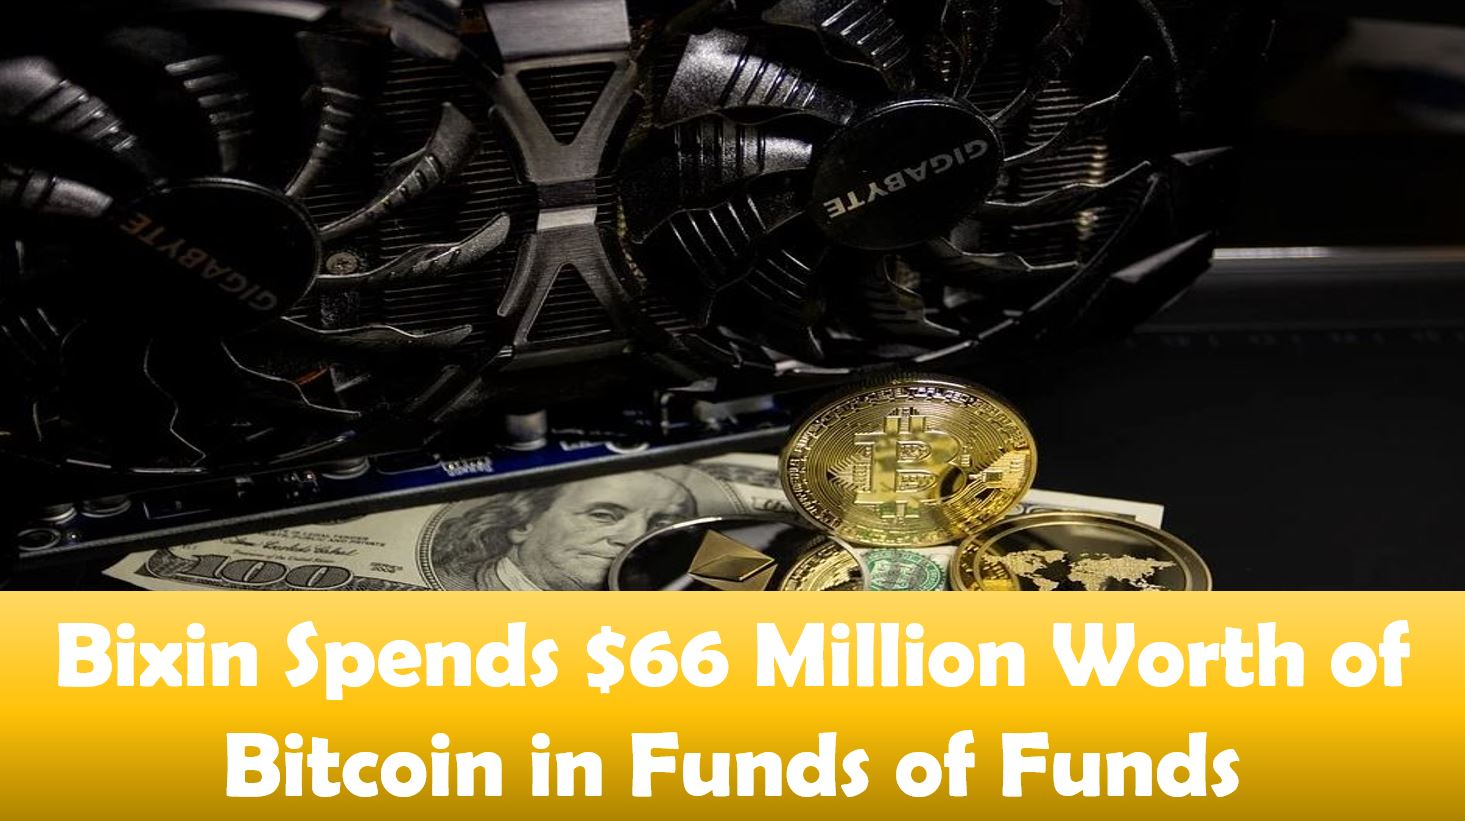 Bixin Spends $66 Million Worth of Bitcoin in Funds of Funds